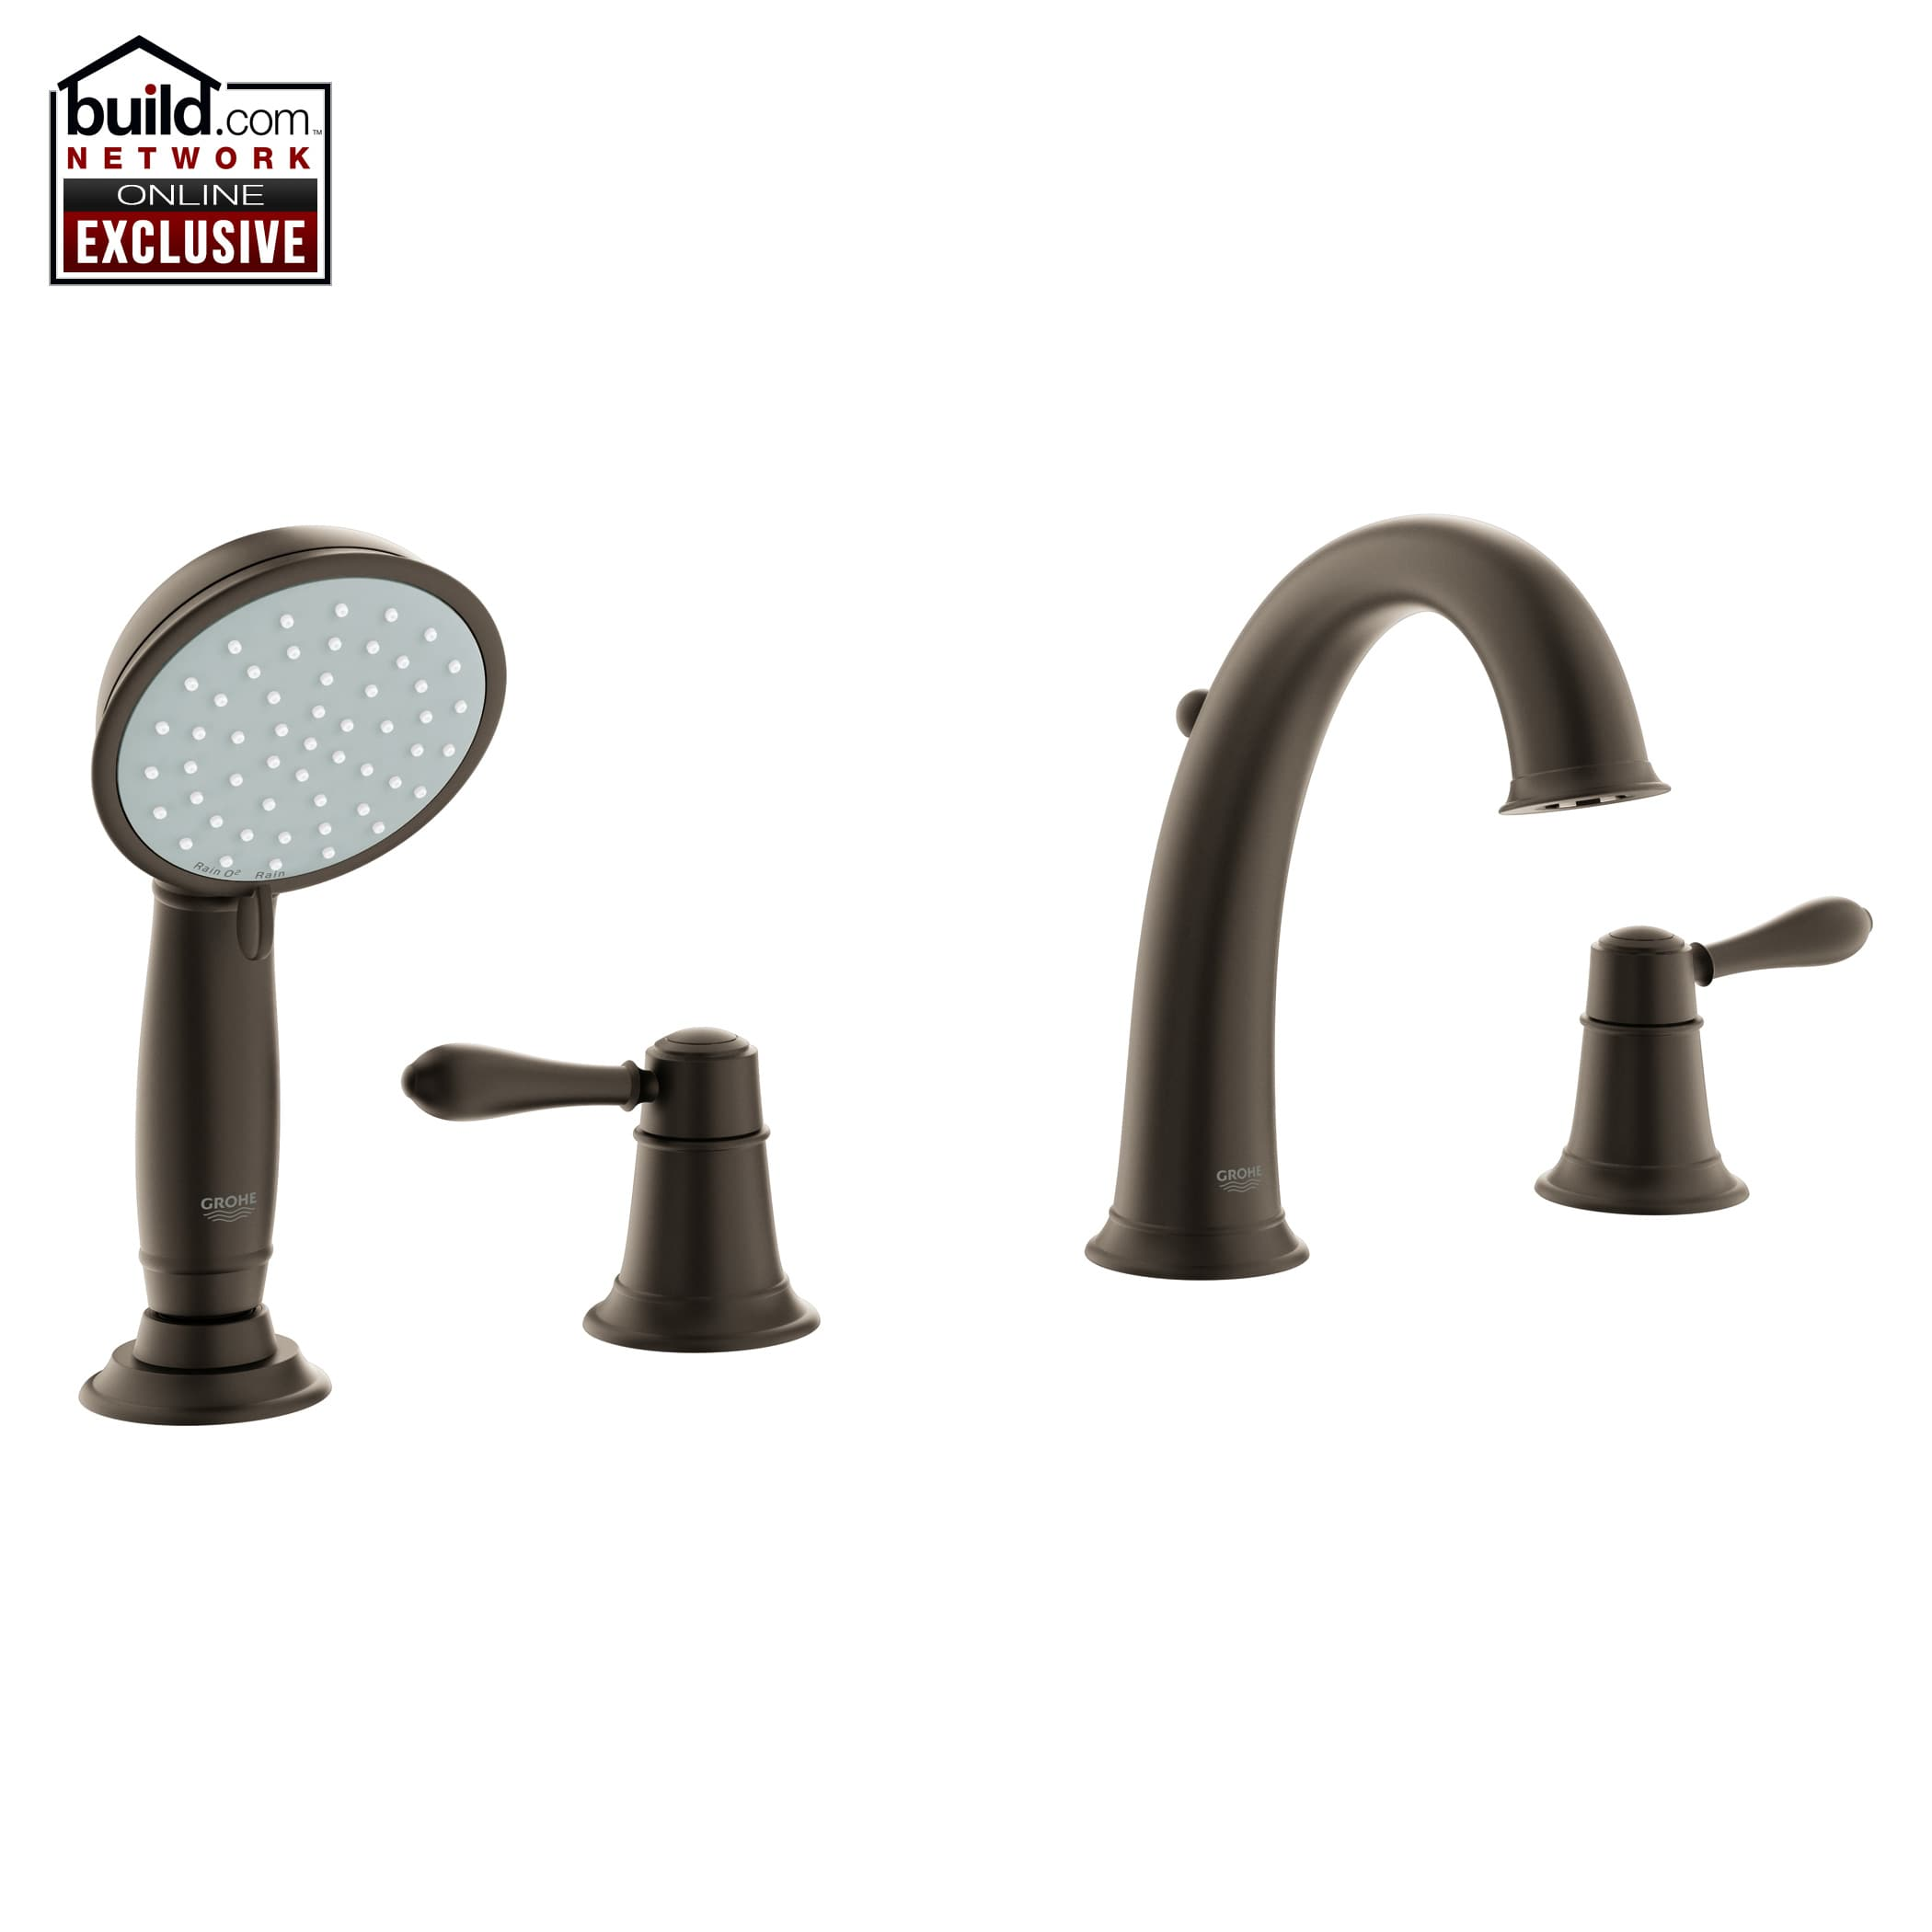 Grohe 25162ZC0 Oil Rubbed Bronze Fairborn Deck Mounted Roman Tub ...